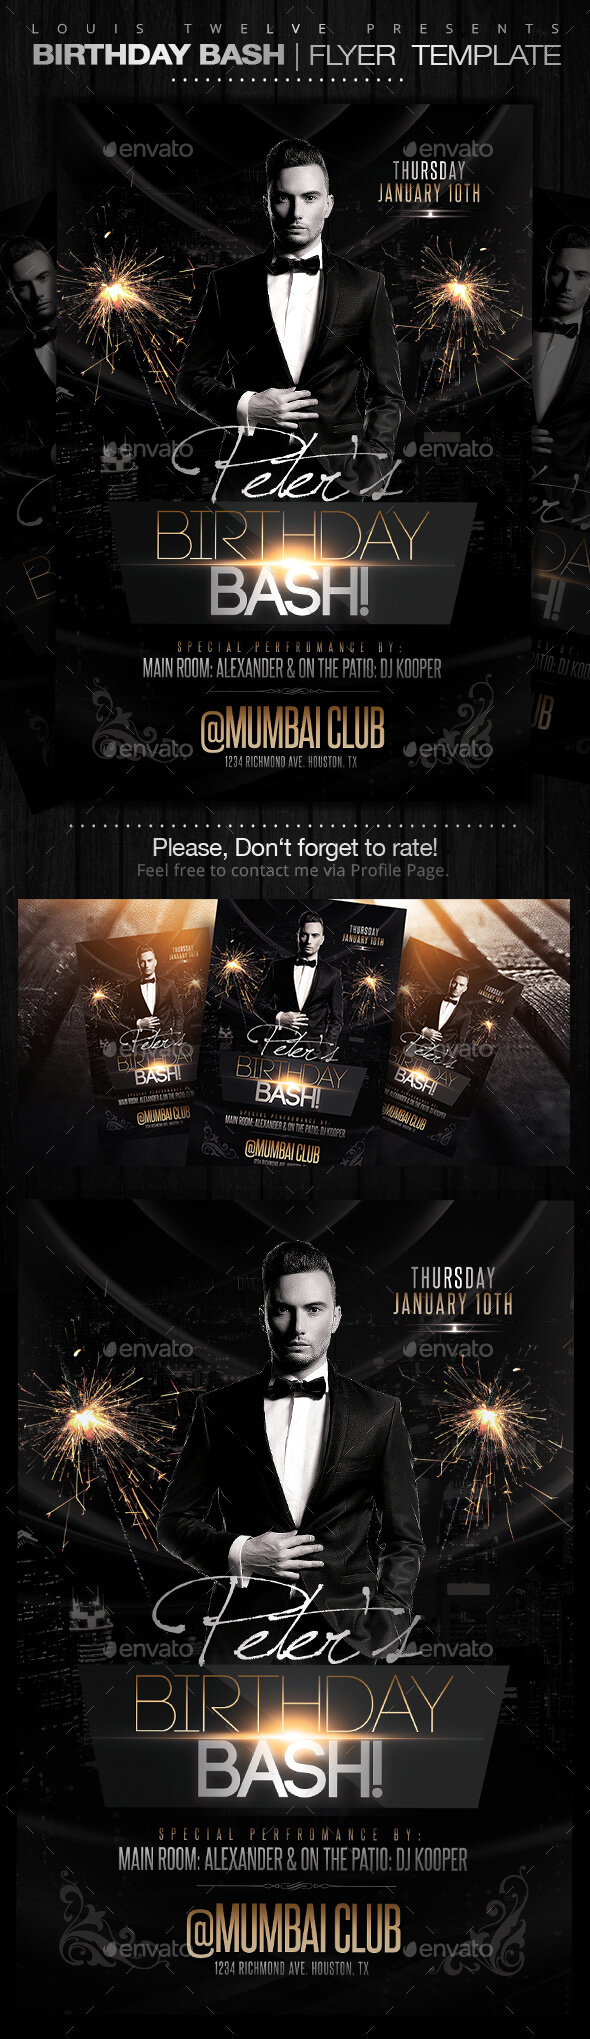 GraphicRiver Birthday Bash Flyer Template 9836021